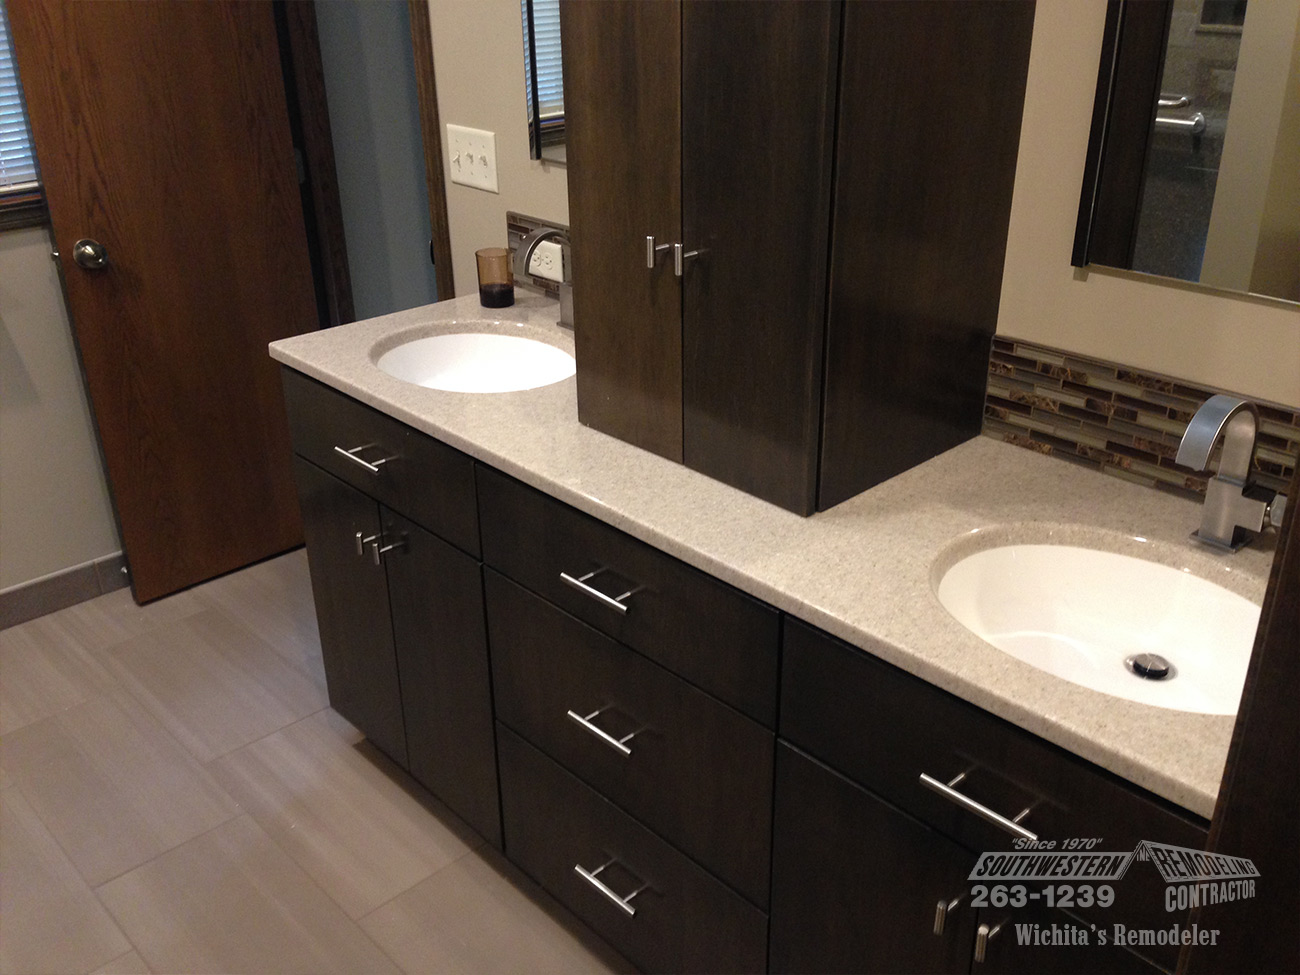 How To Renovate A Bathroom | Bathroom Remodeling Southwestern Remodeling Wichita